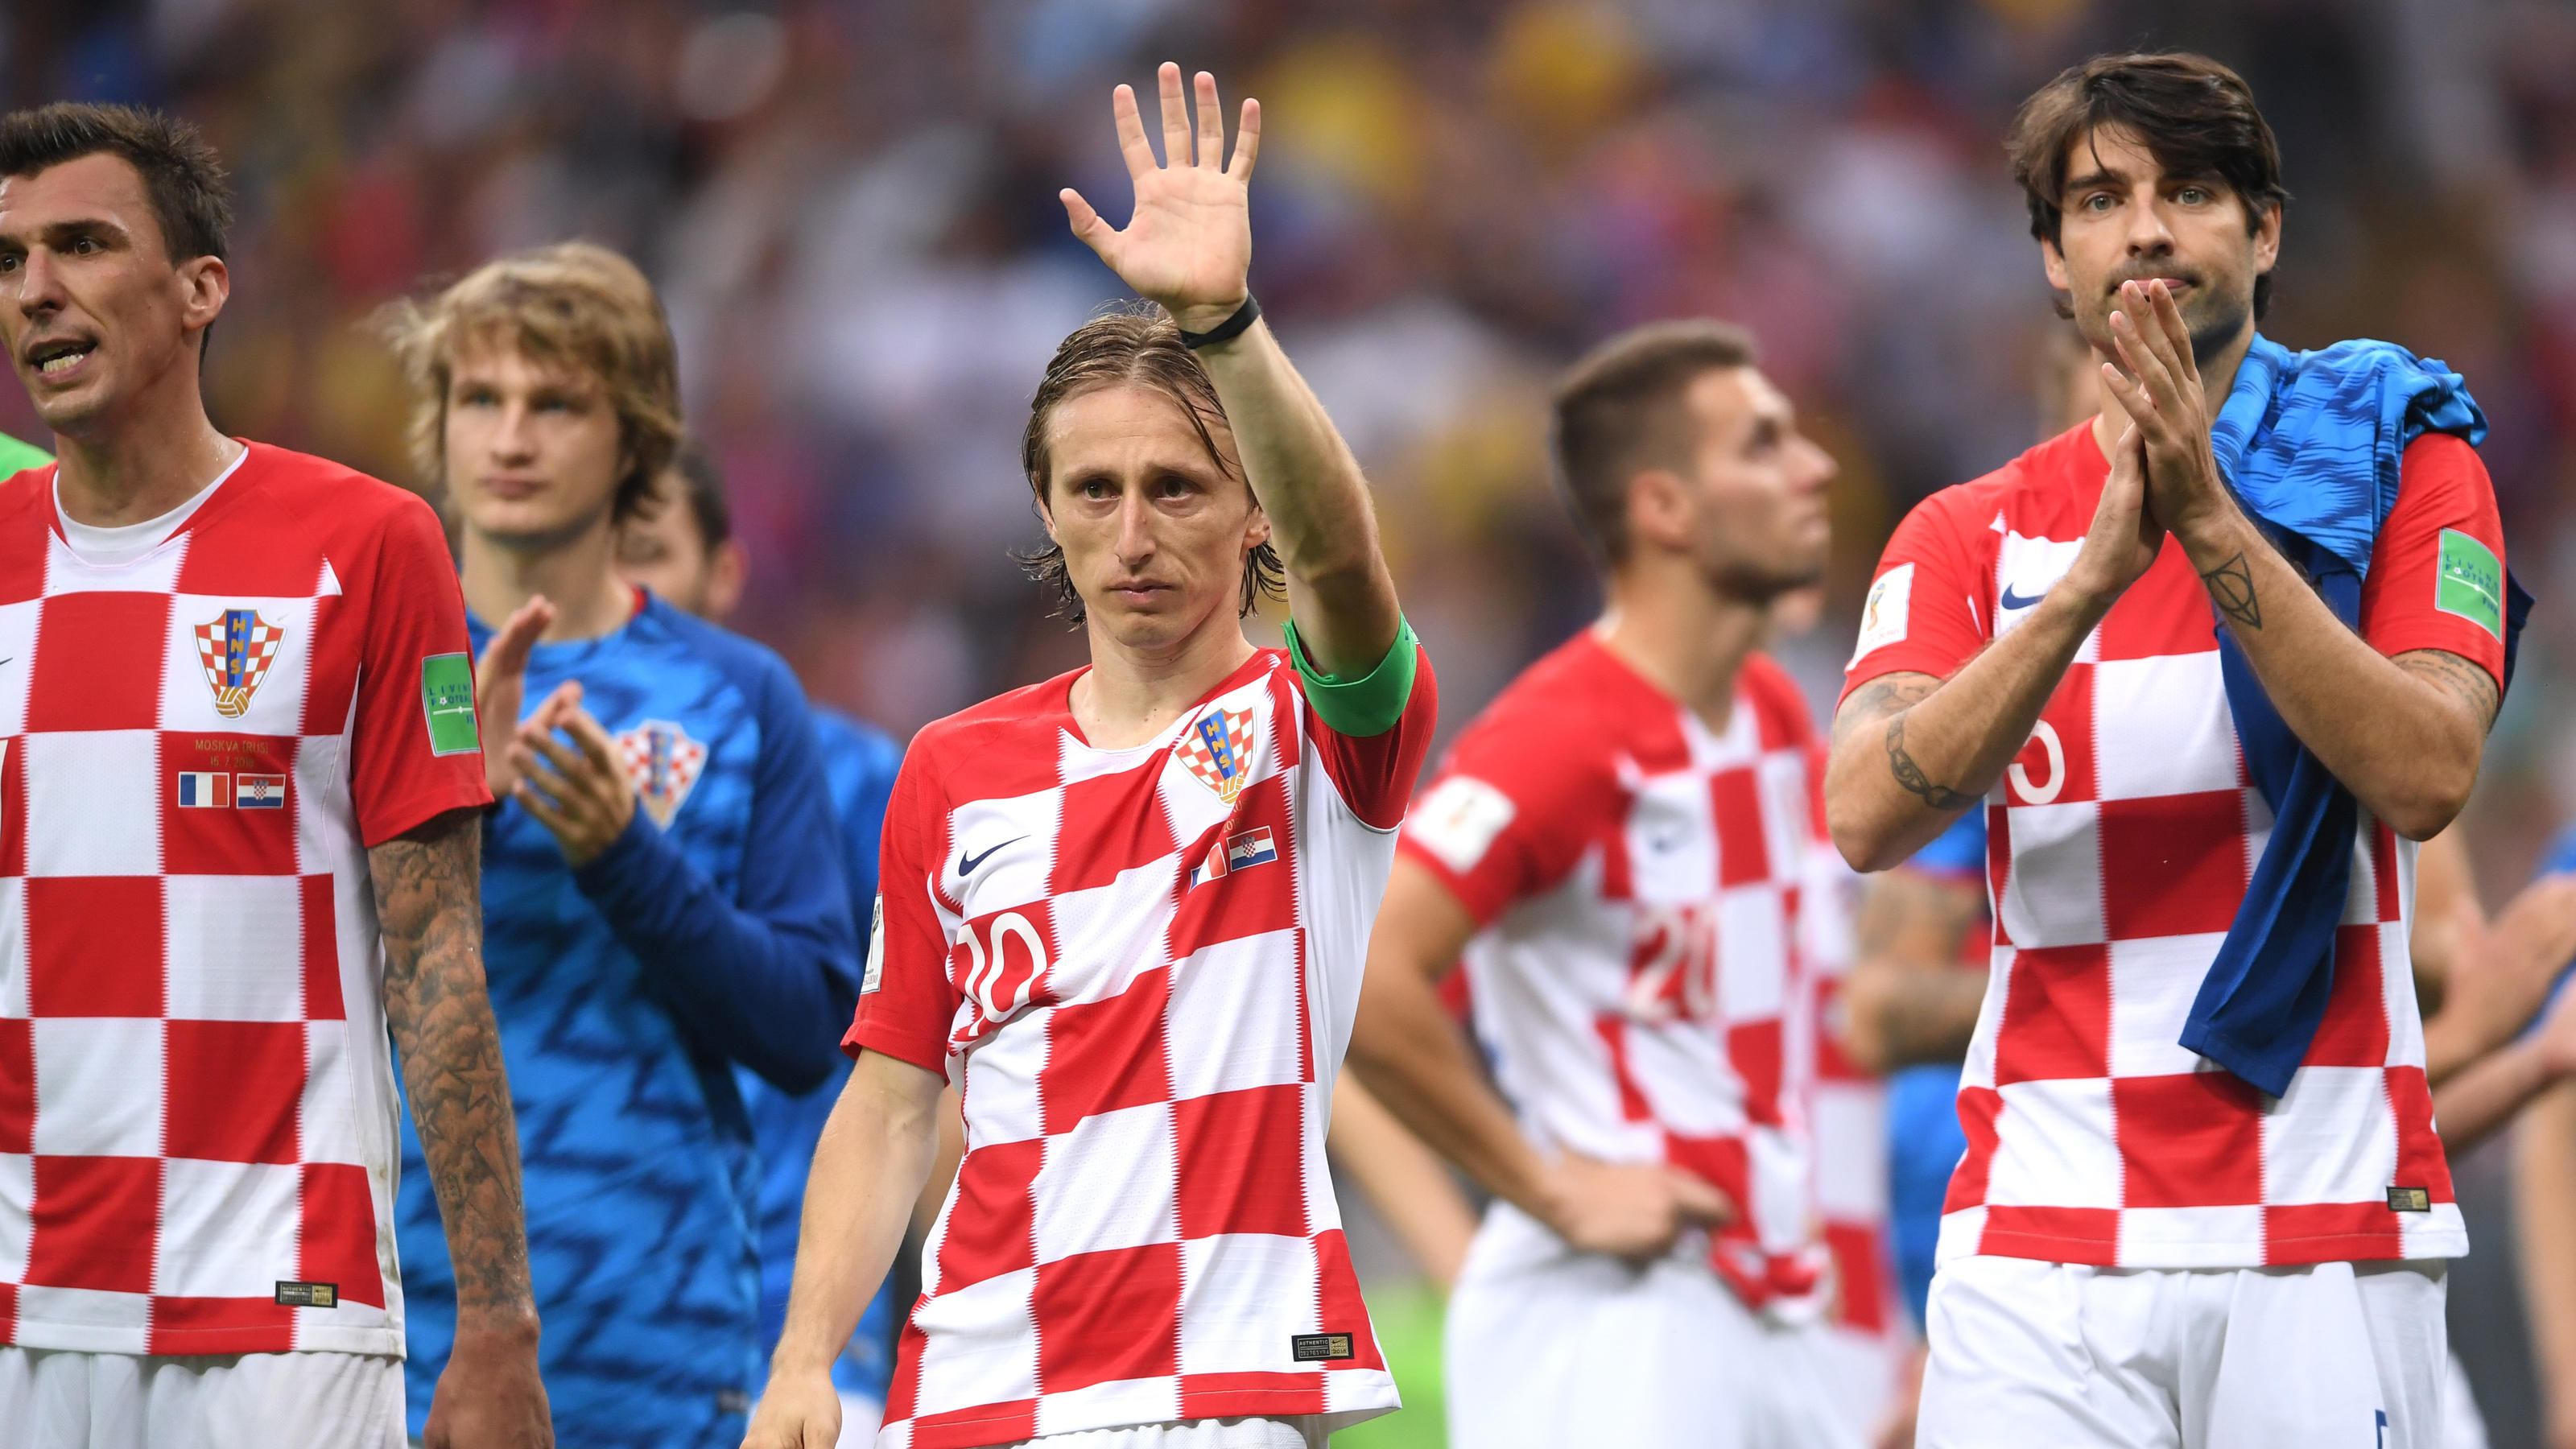 MOSCOW, RUSSIA - JULY 15:  Luka Modric of Croatia applauds fans after the 2018 FIFA World Cup Final between France and Croatia at Luzhniki Stadium on July 15, 2018 in Moscow, Russia.  (Photo by Laurence Griffiths/Getty Images)